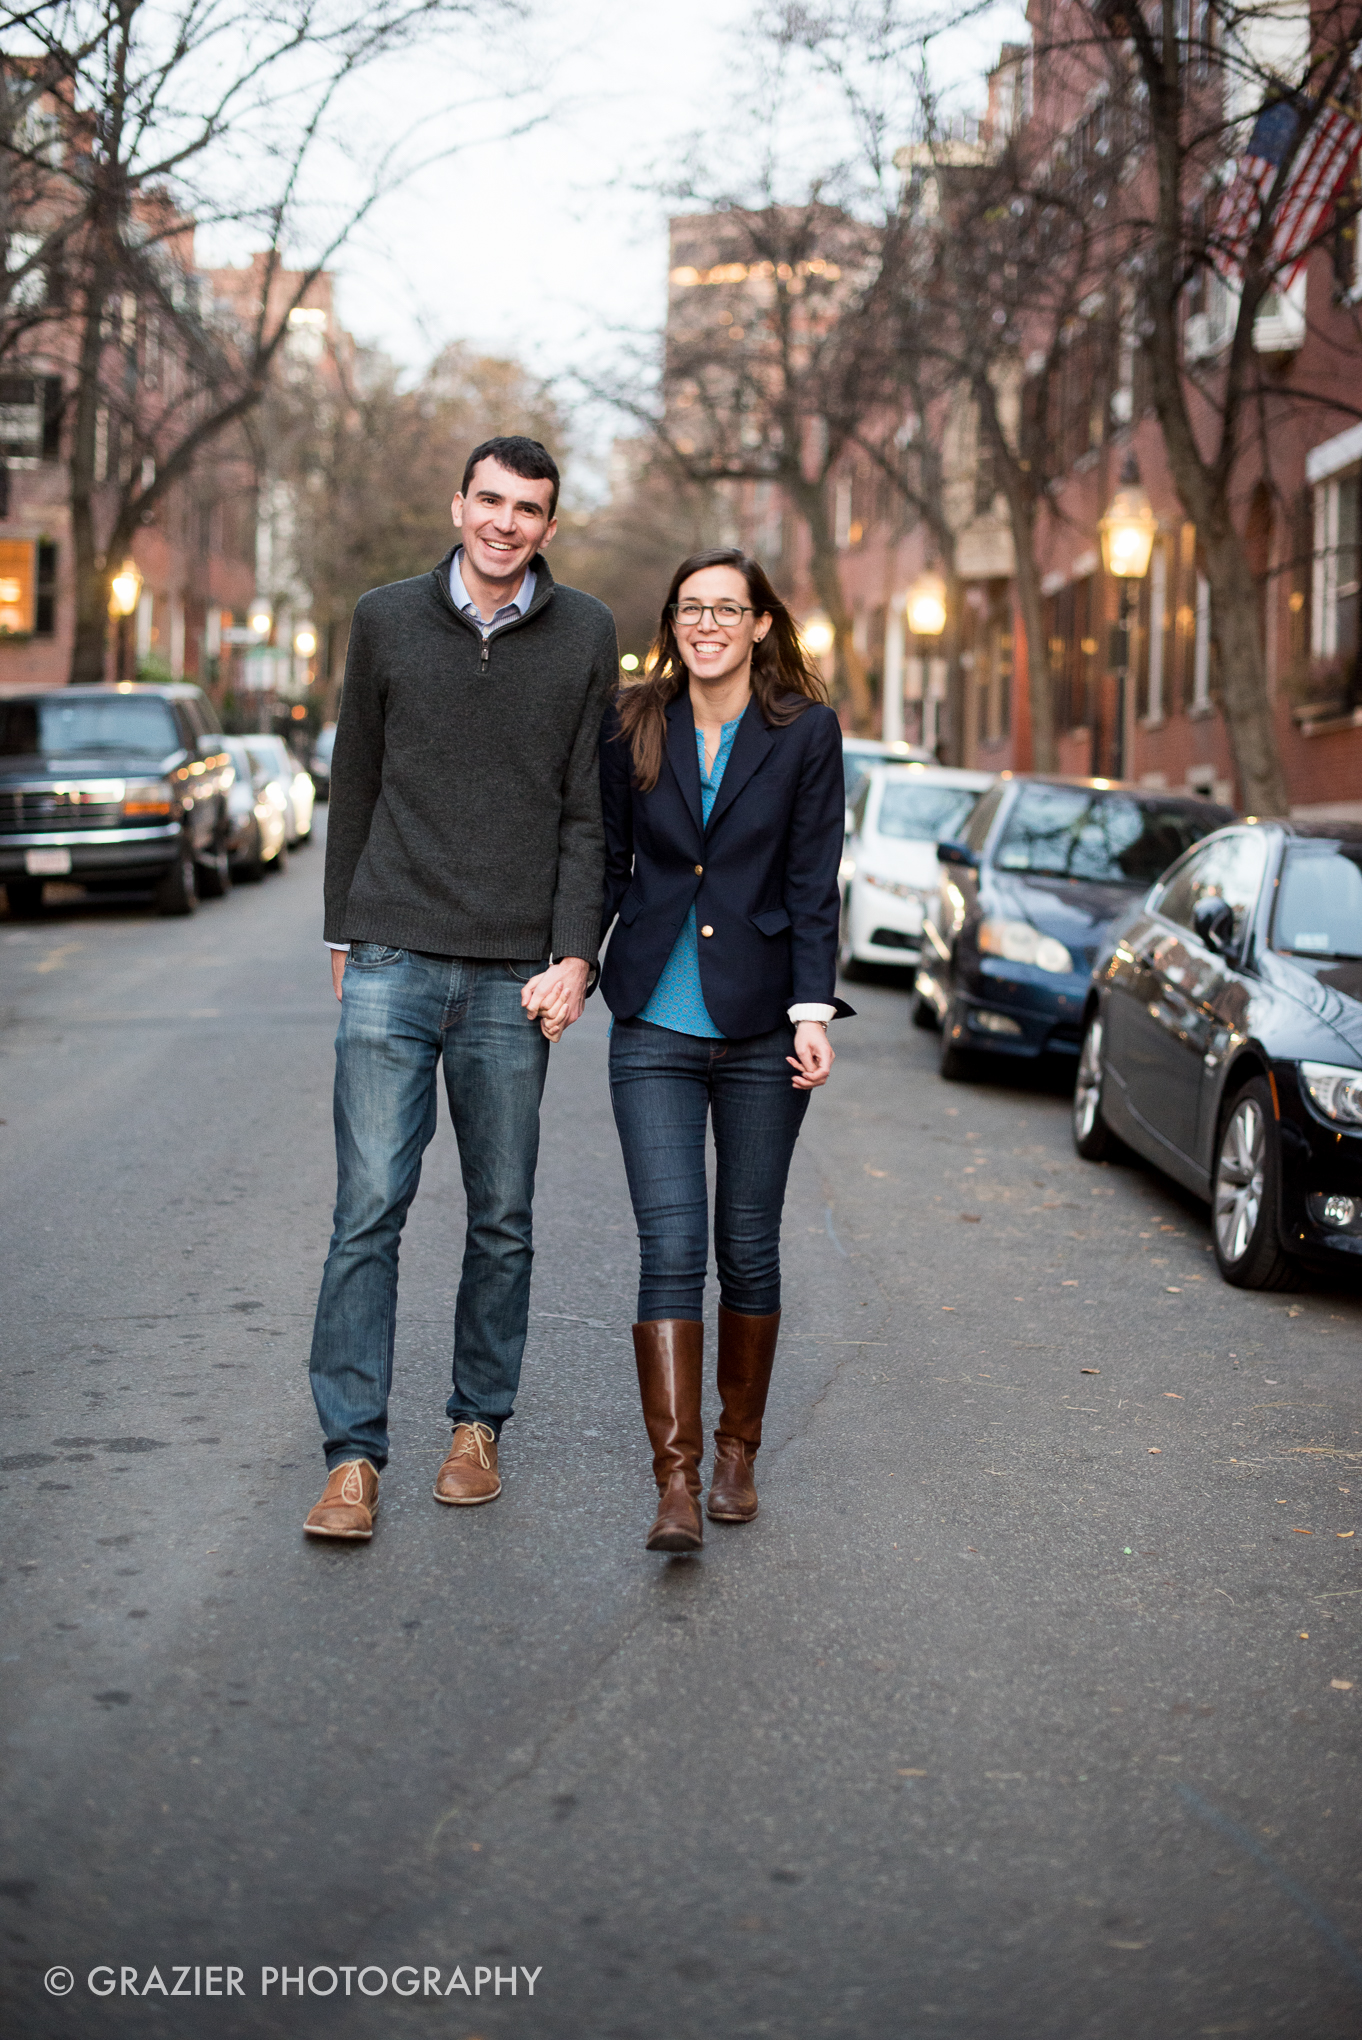 Grazier_Photography_Boston_Engagement_160430_168.jpg